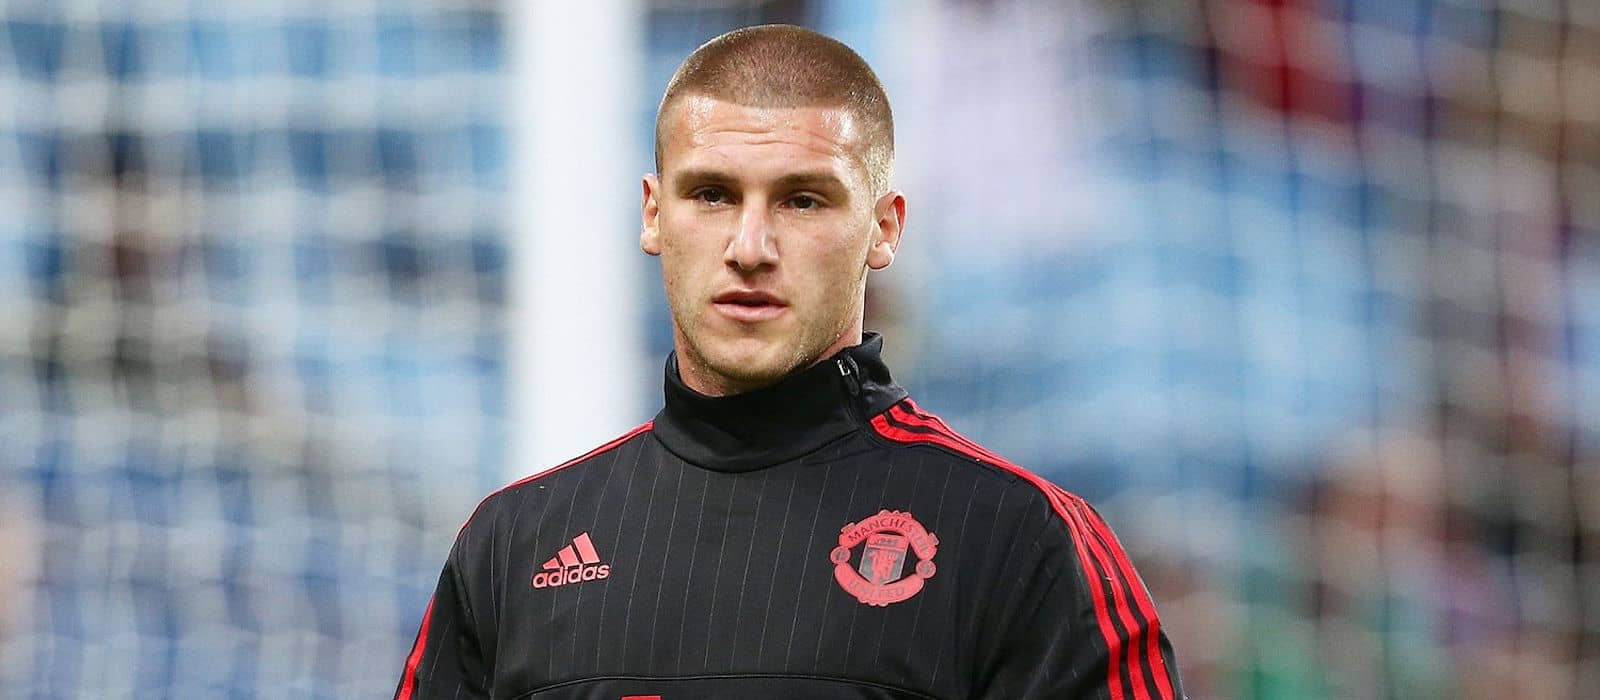 Manchester United set £6.5m asking price for goalkeeper Sam Johnstone with significant interest – report